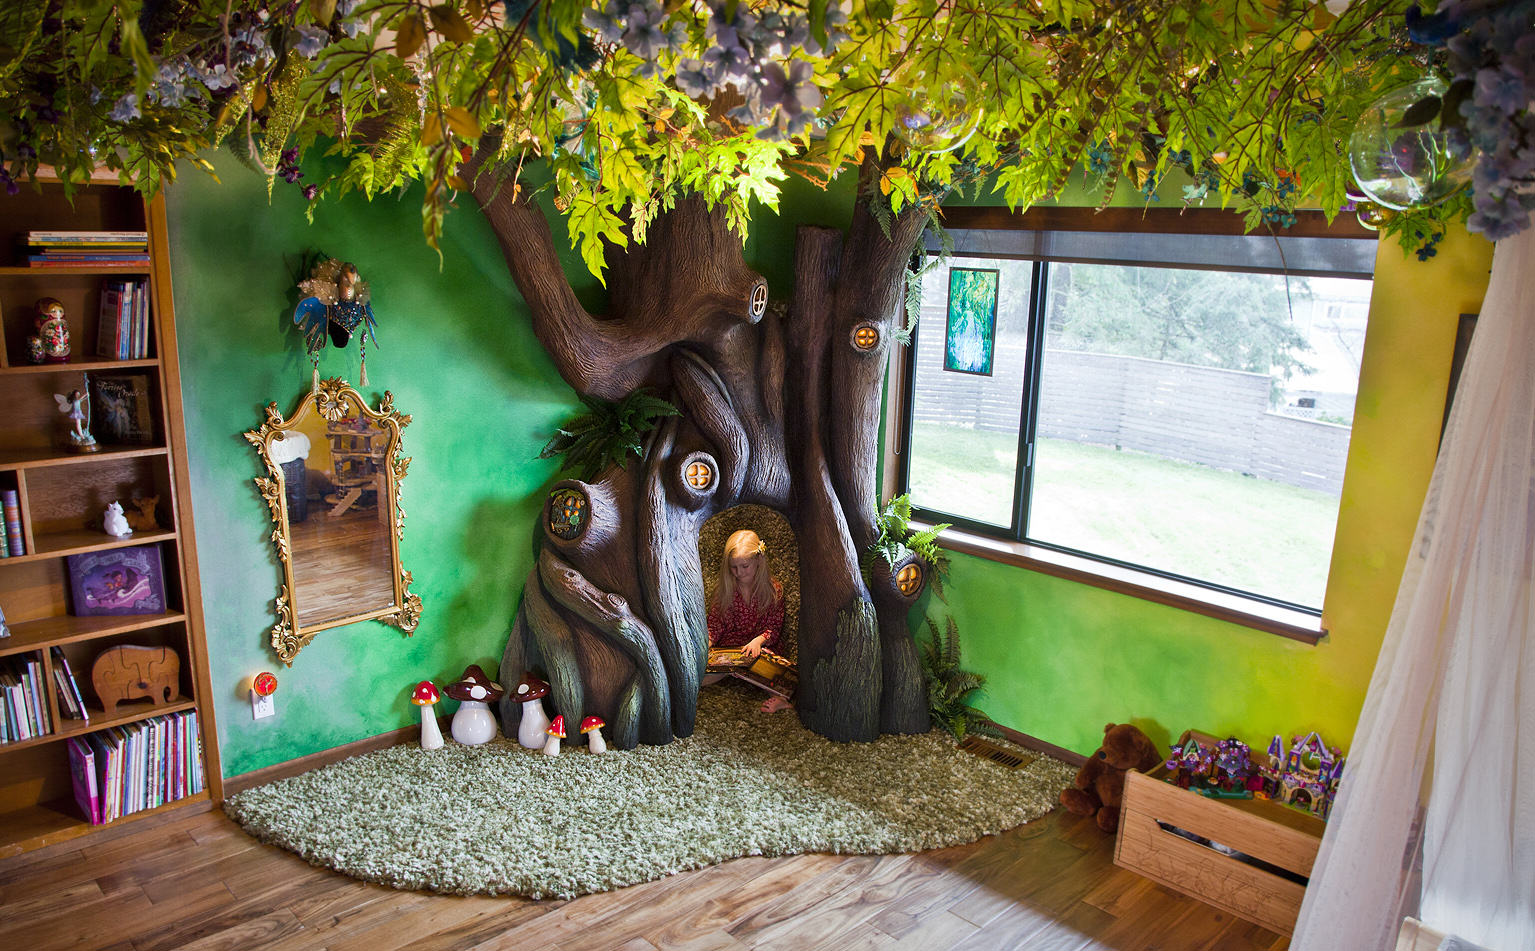 nAkXfzE This Dad Transformed His Daughters Bedroom Into A Magical Treehouse Kingdom